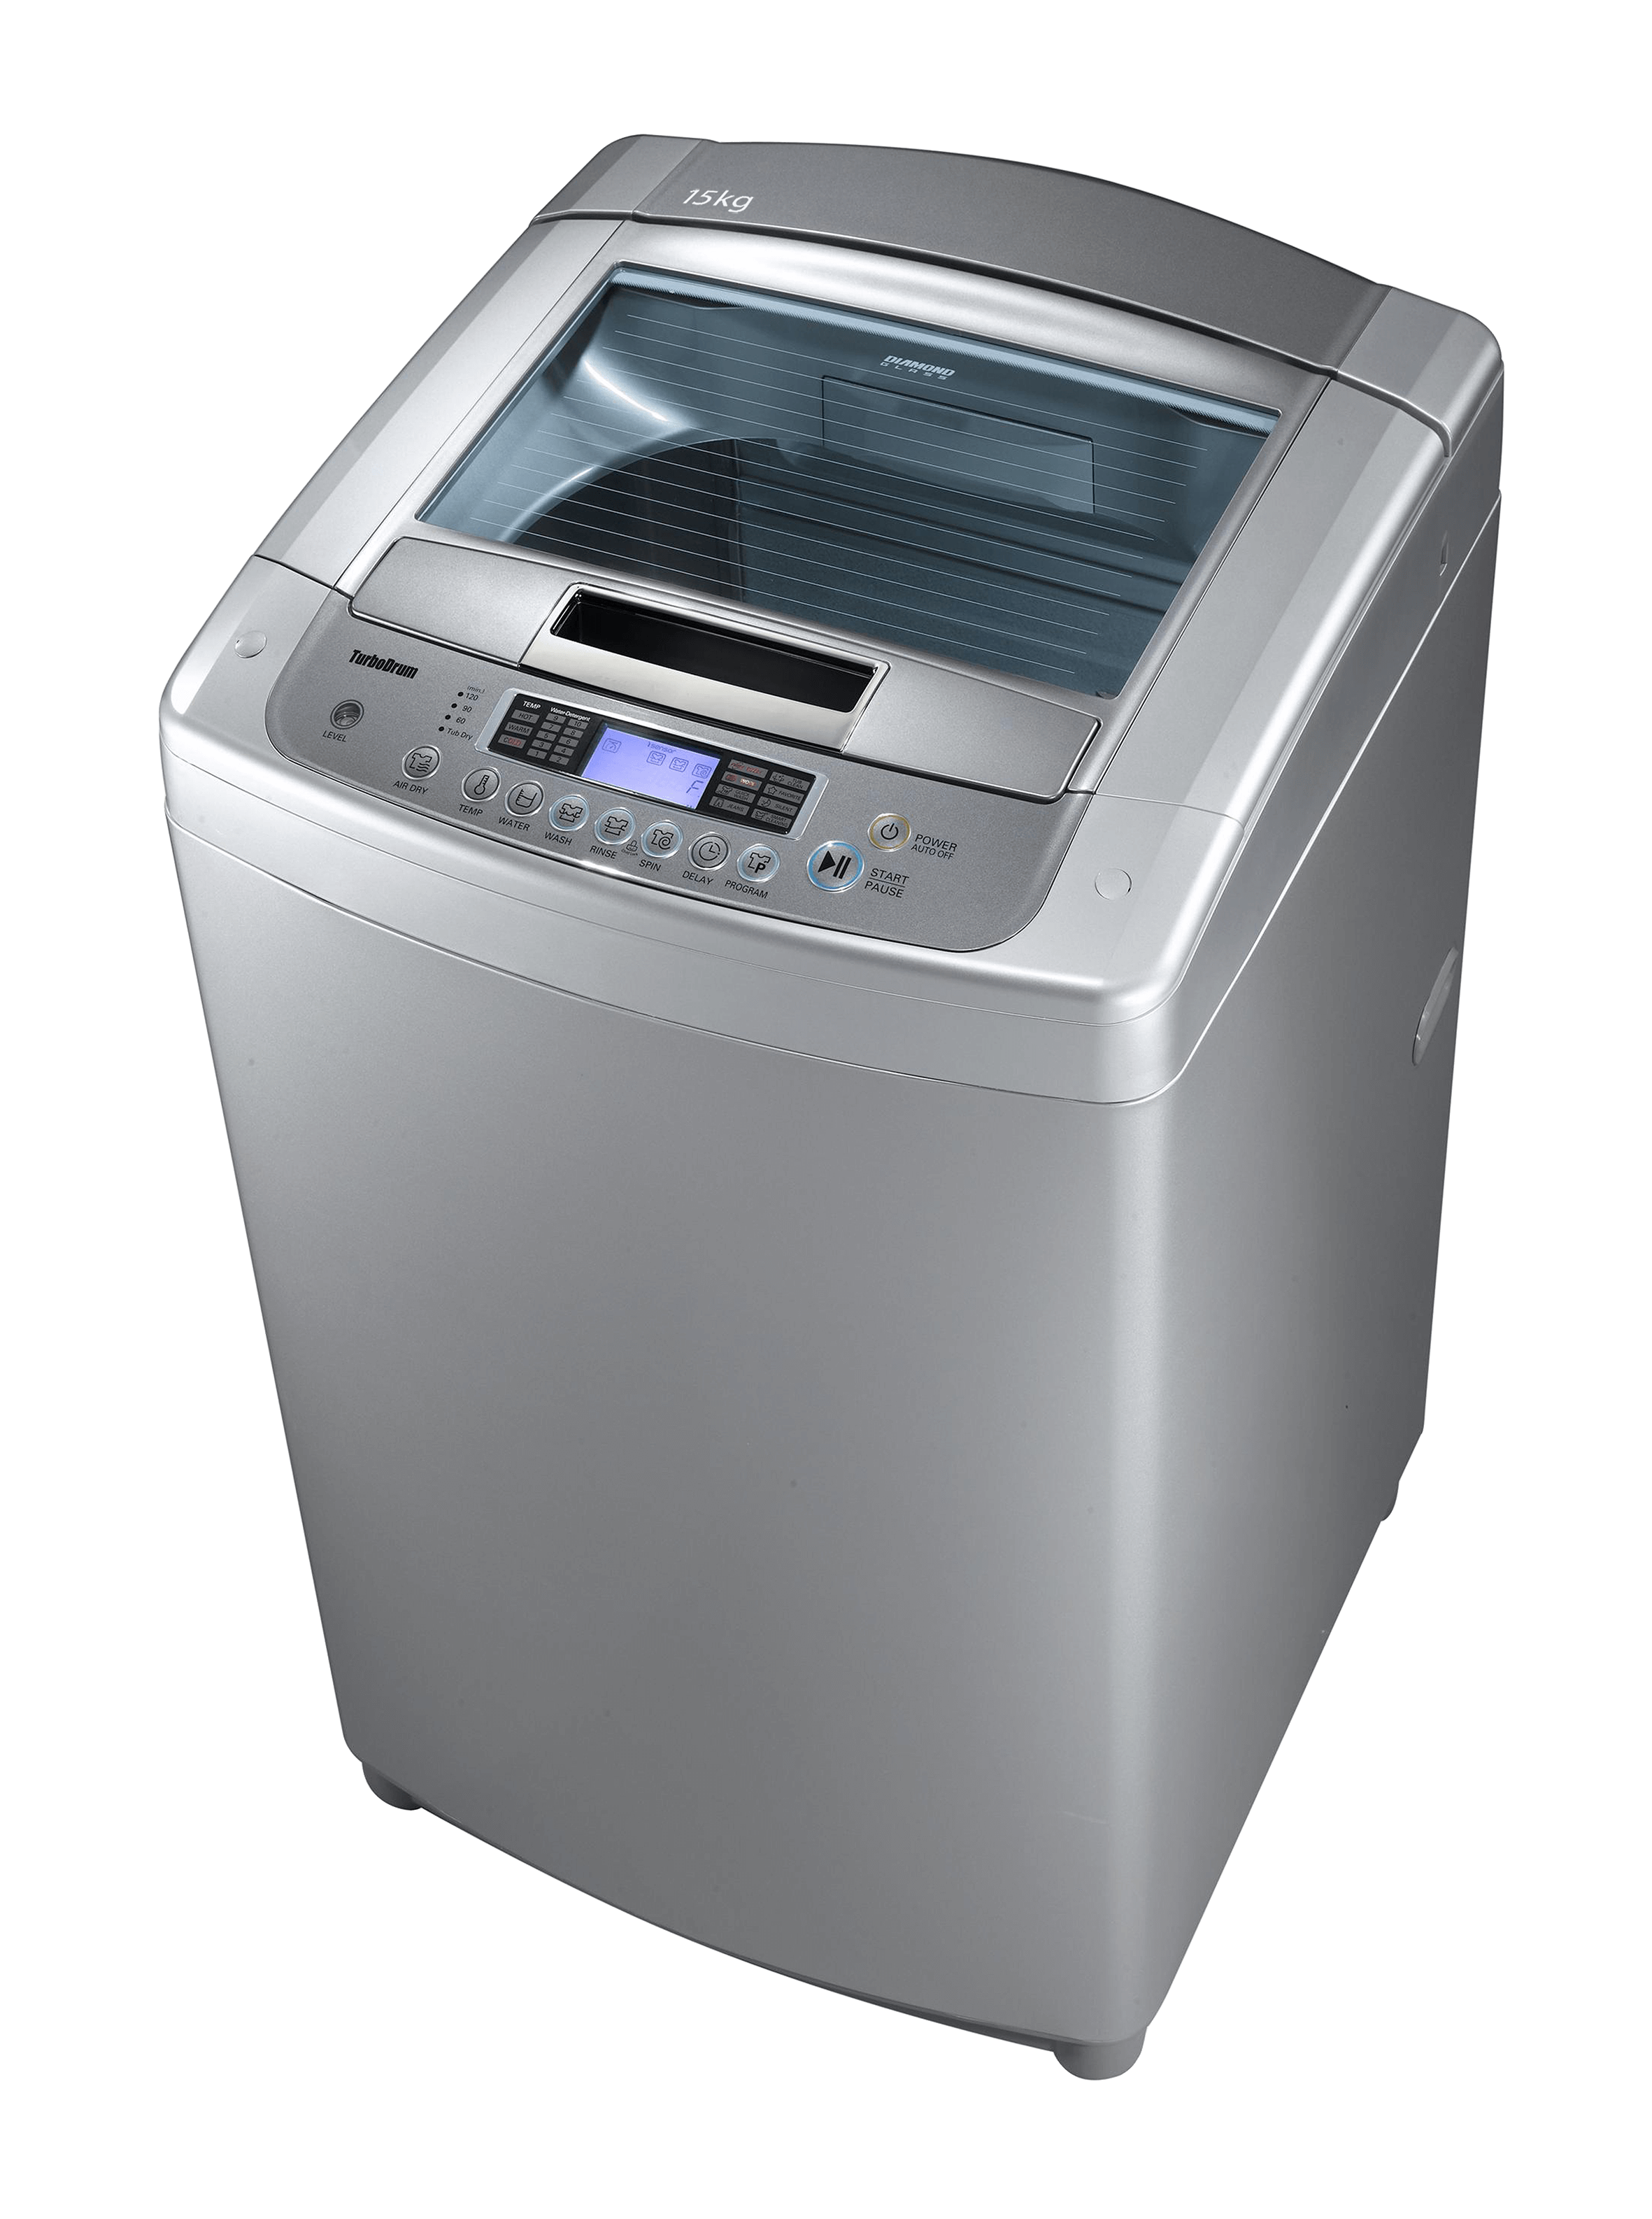 Lg Top loader Washing Machine repair Manual Error Code pe